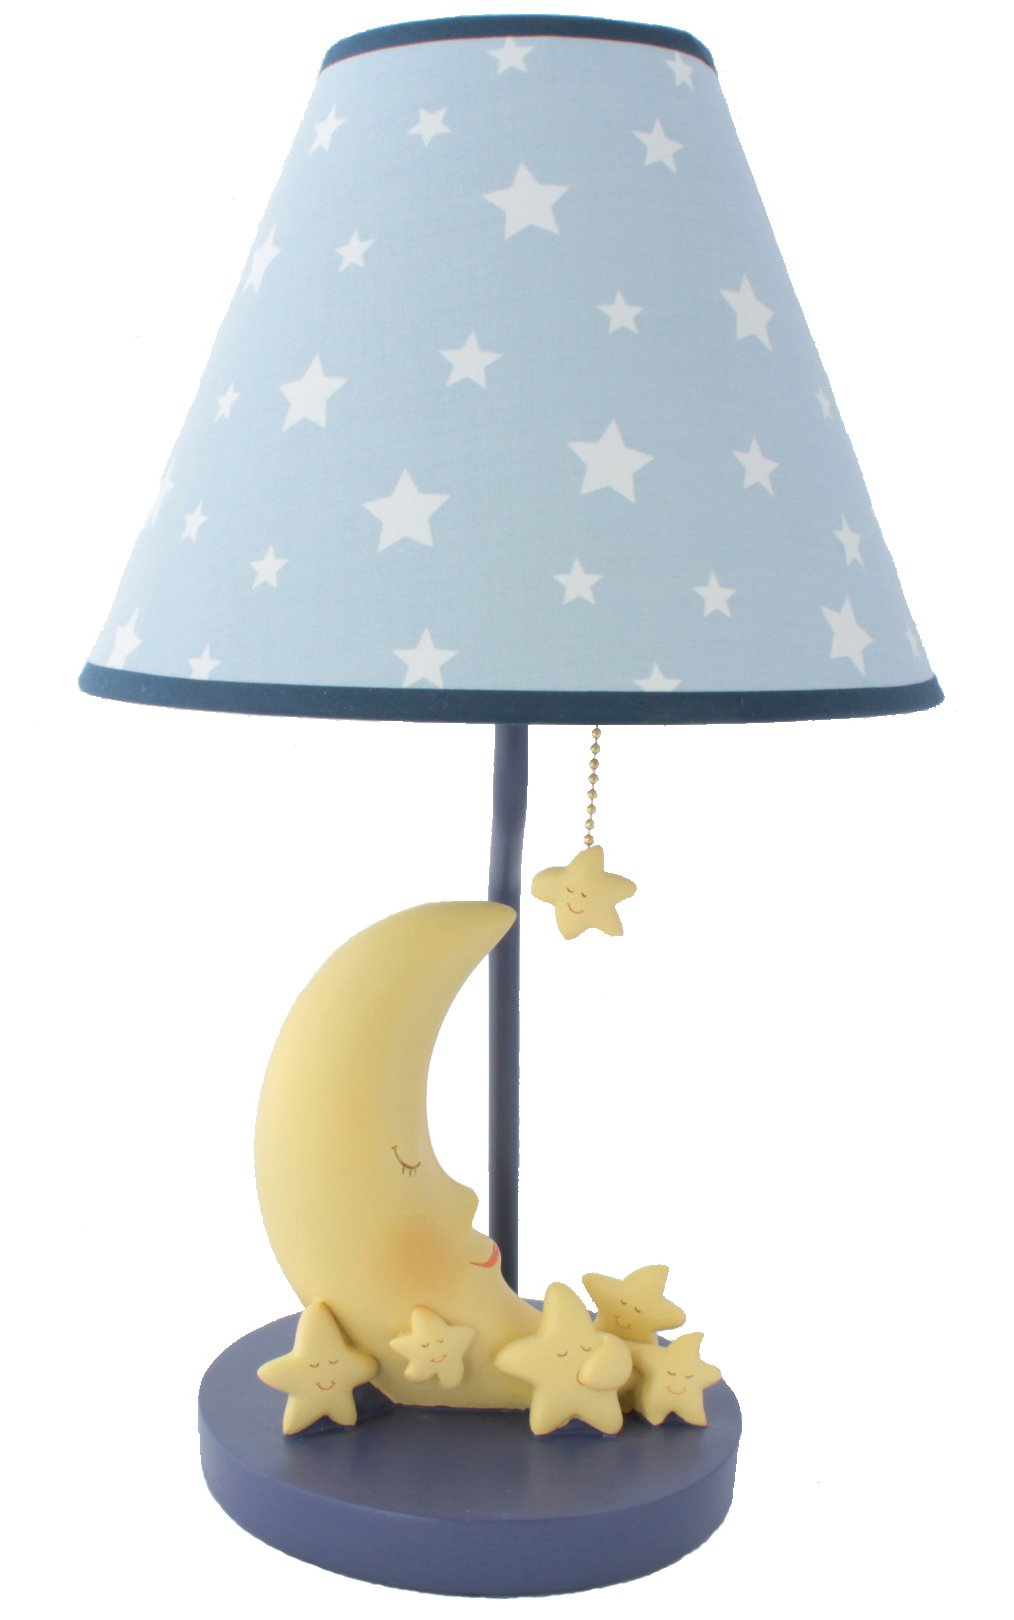 Sleepy Moon and Stars Table Lamp with Matching Night Light - Fantastic Hand Painted Details